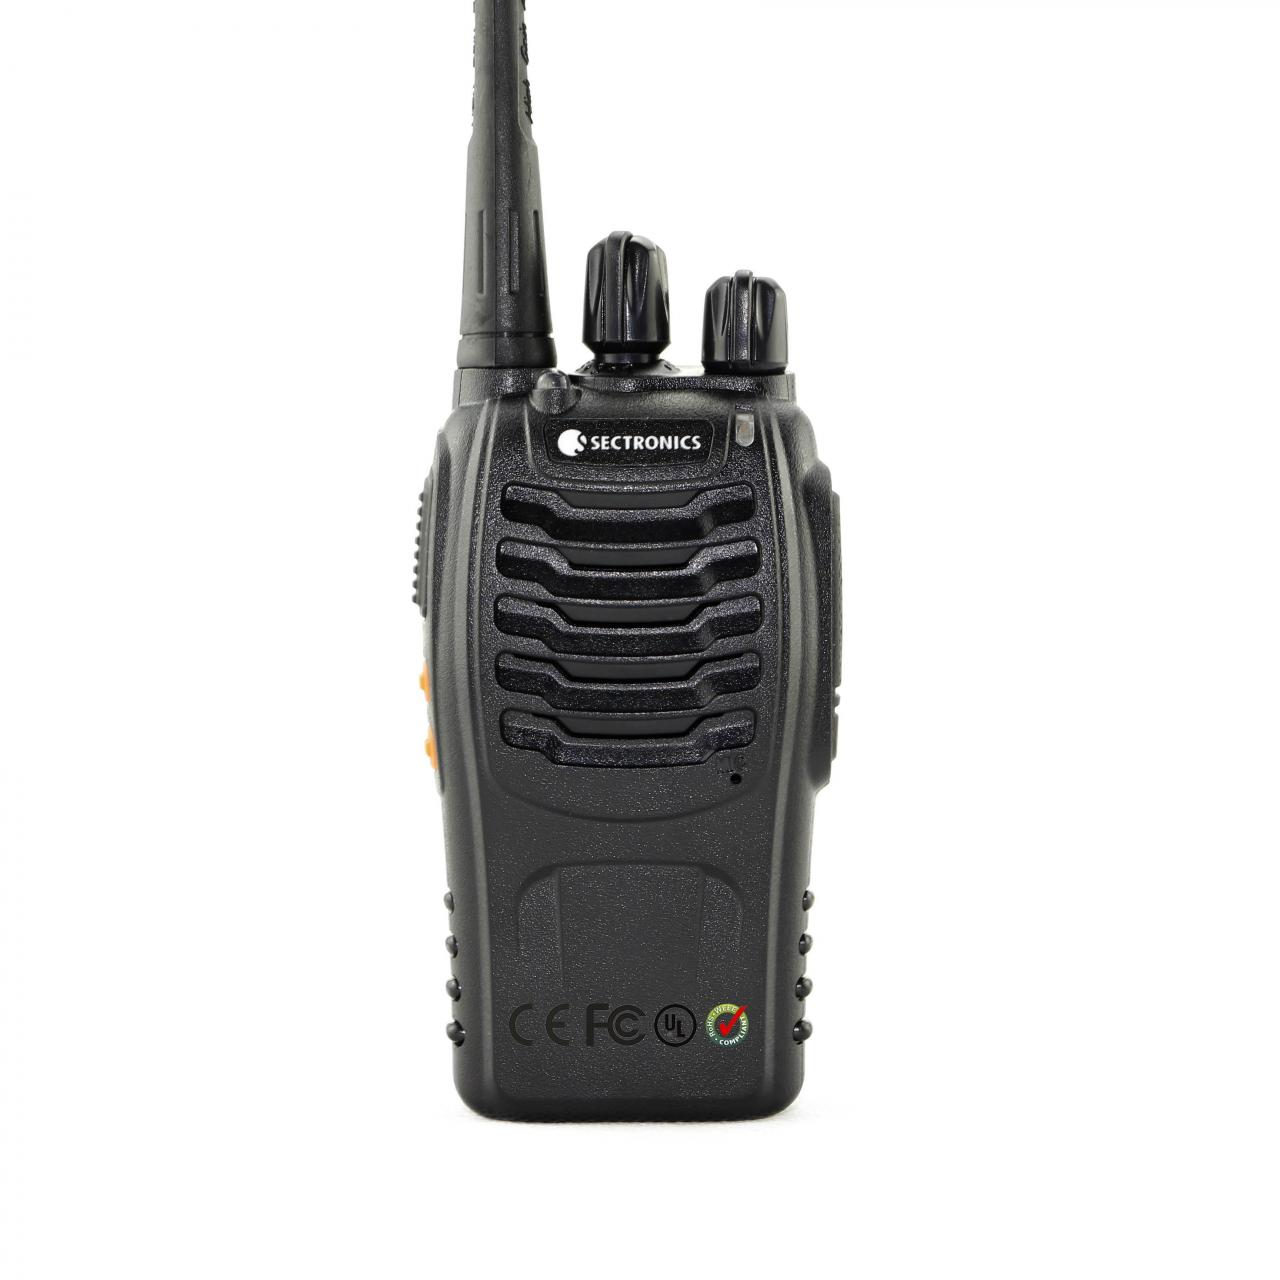 Cheap DP2800 Single Band Two Way Radio for sale